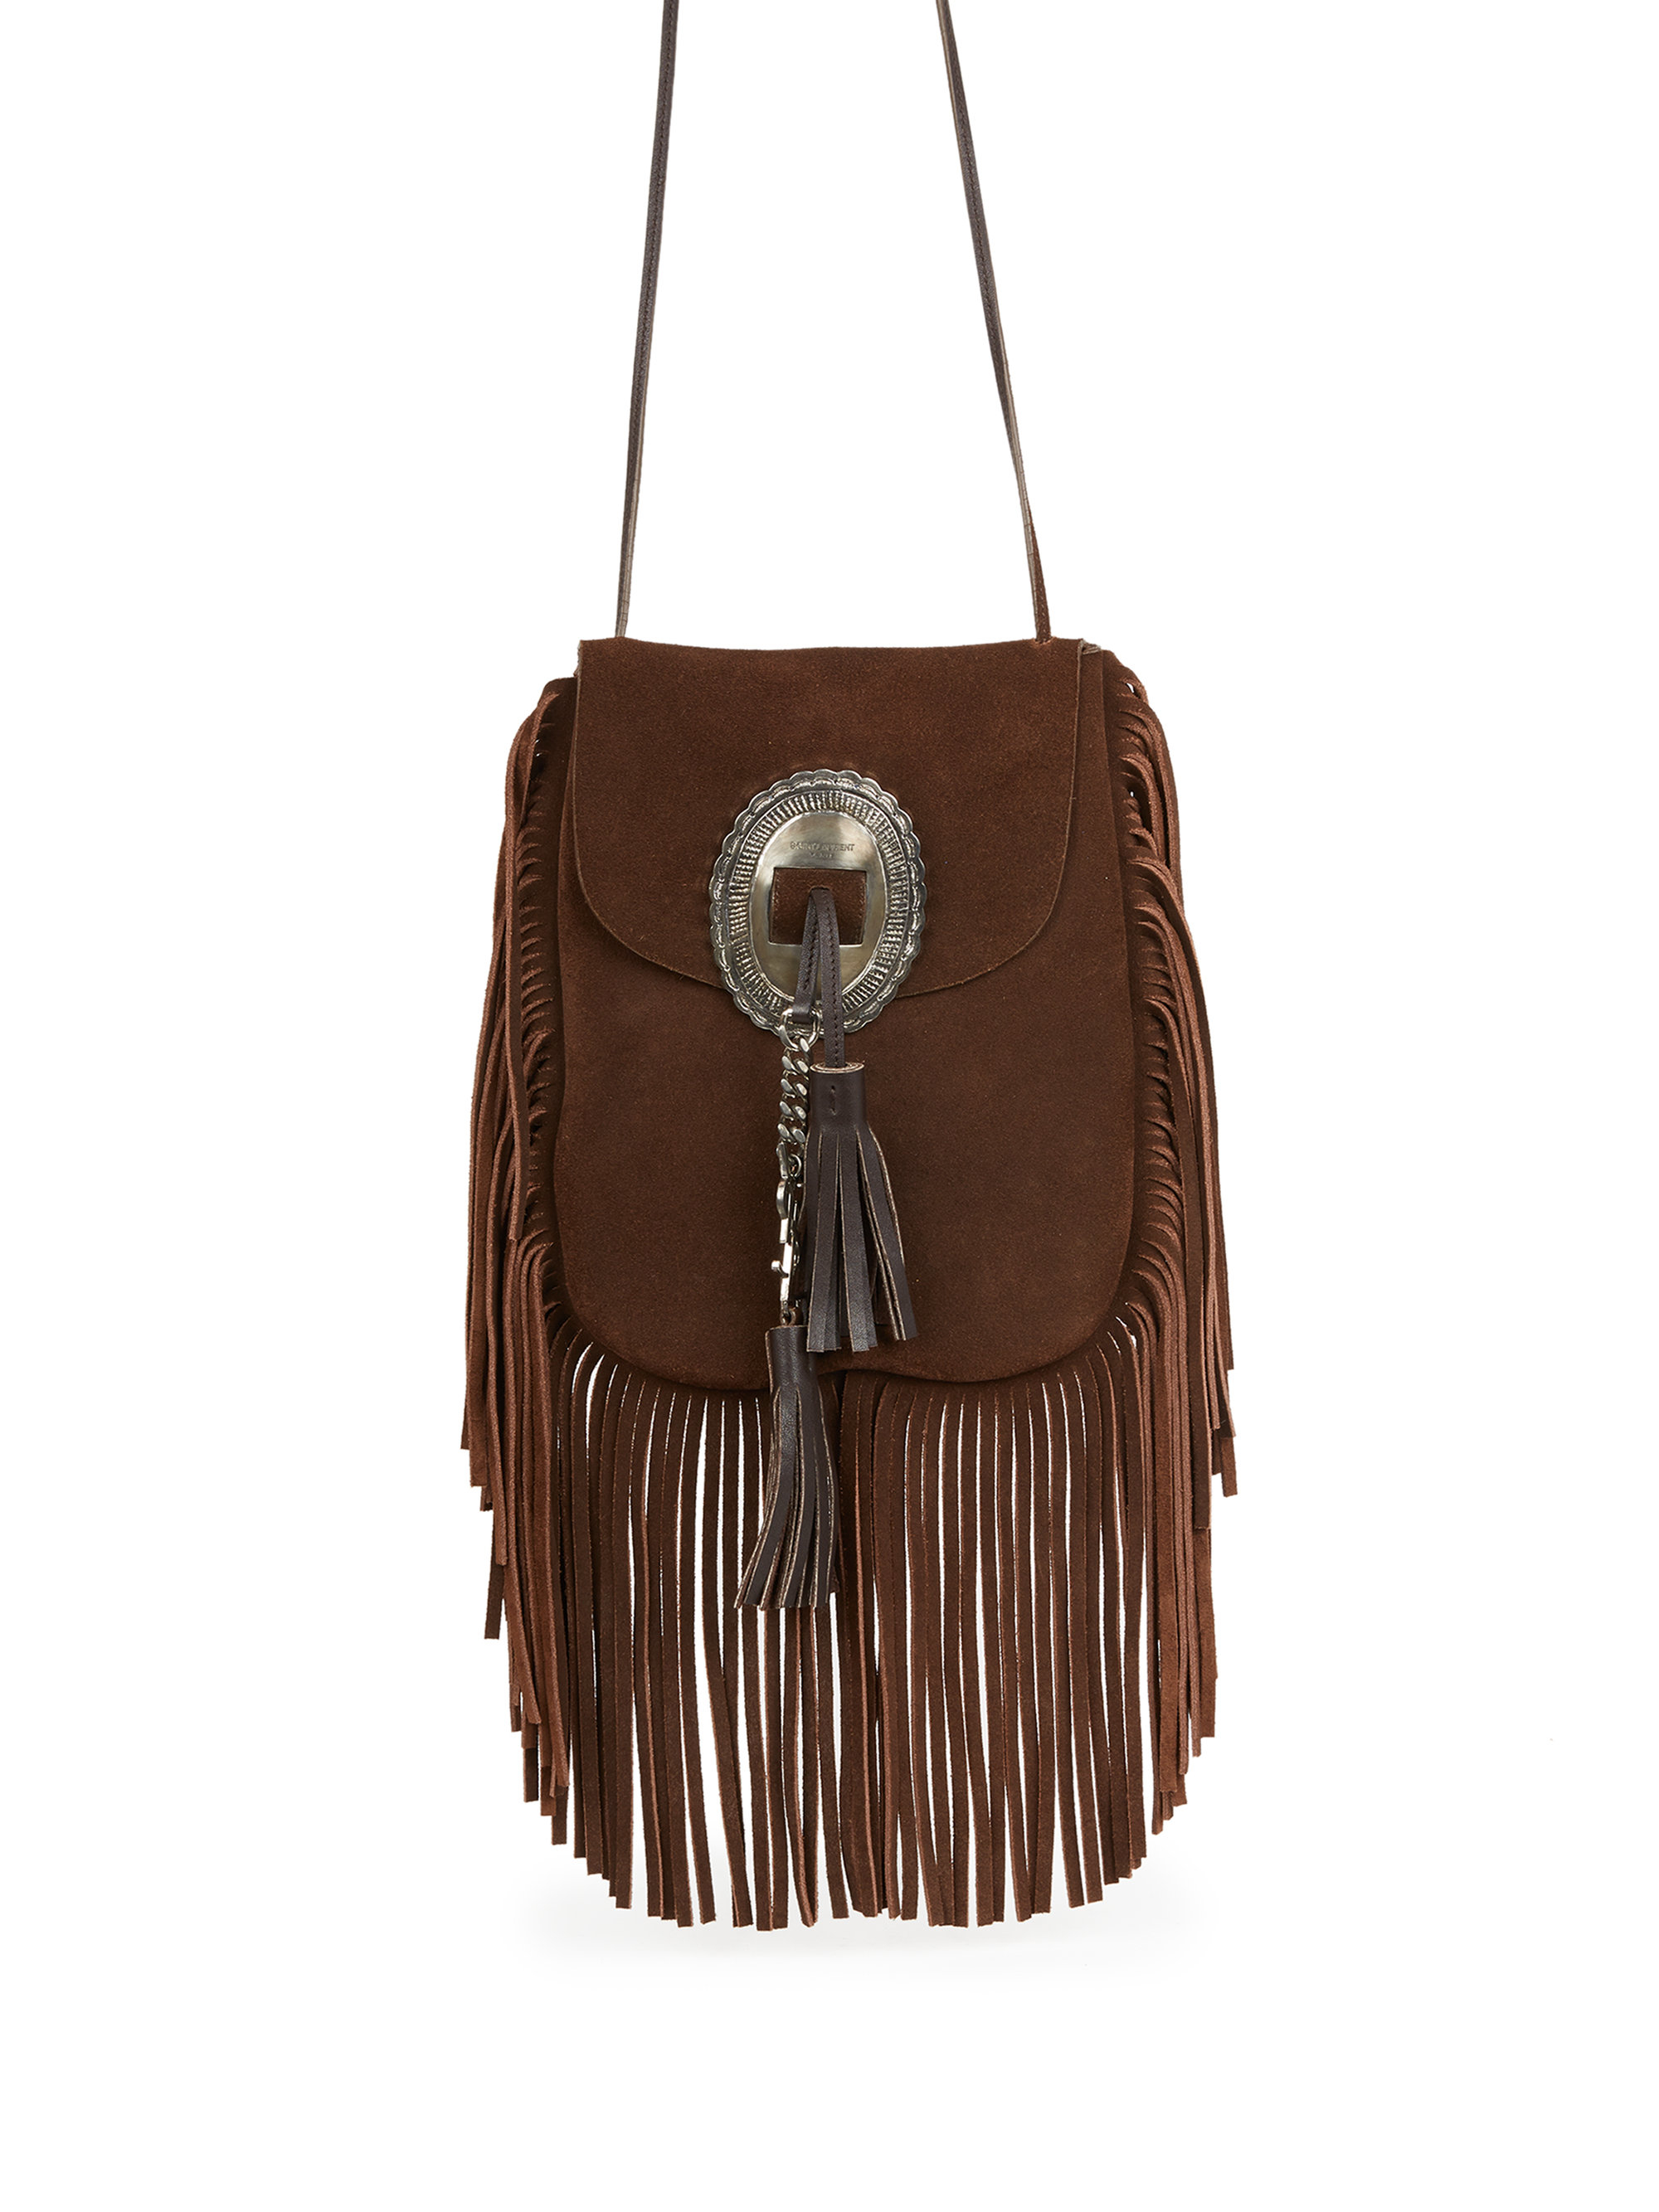 957f1f14b8 small monogram saint laurent fringed crossbody bag in brown suede